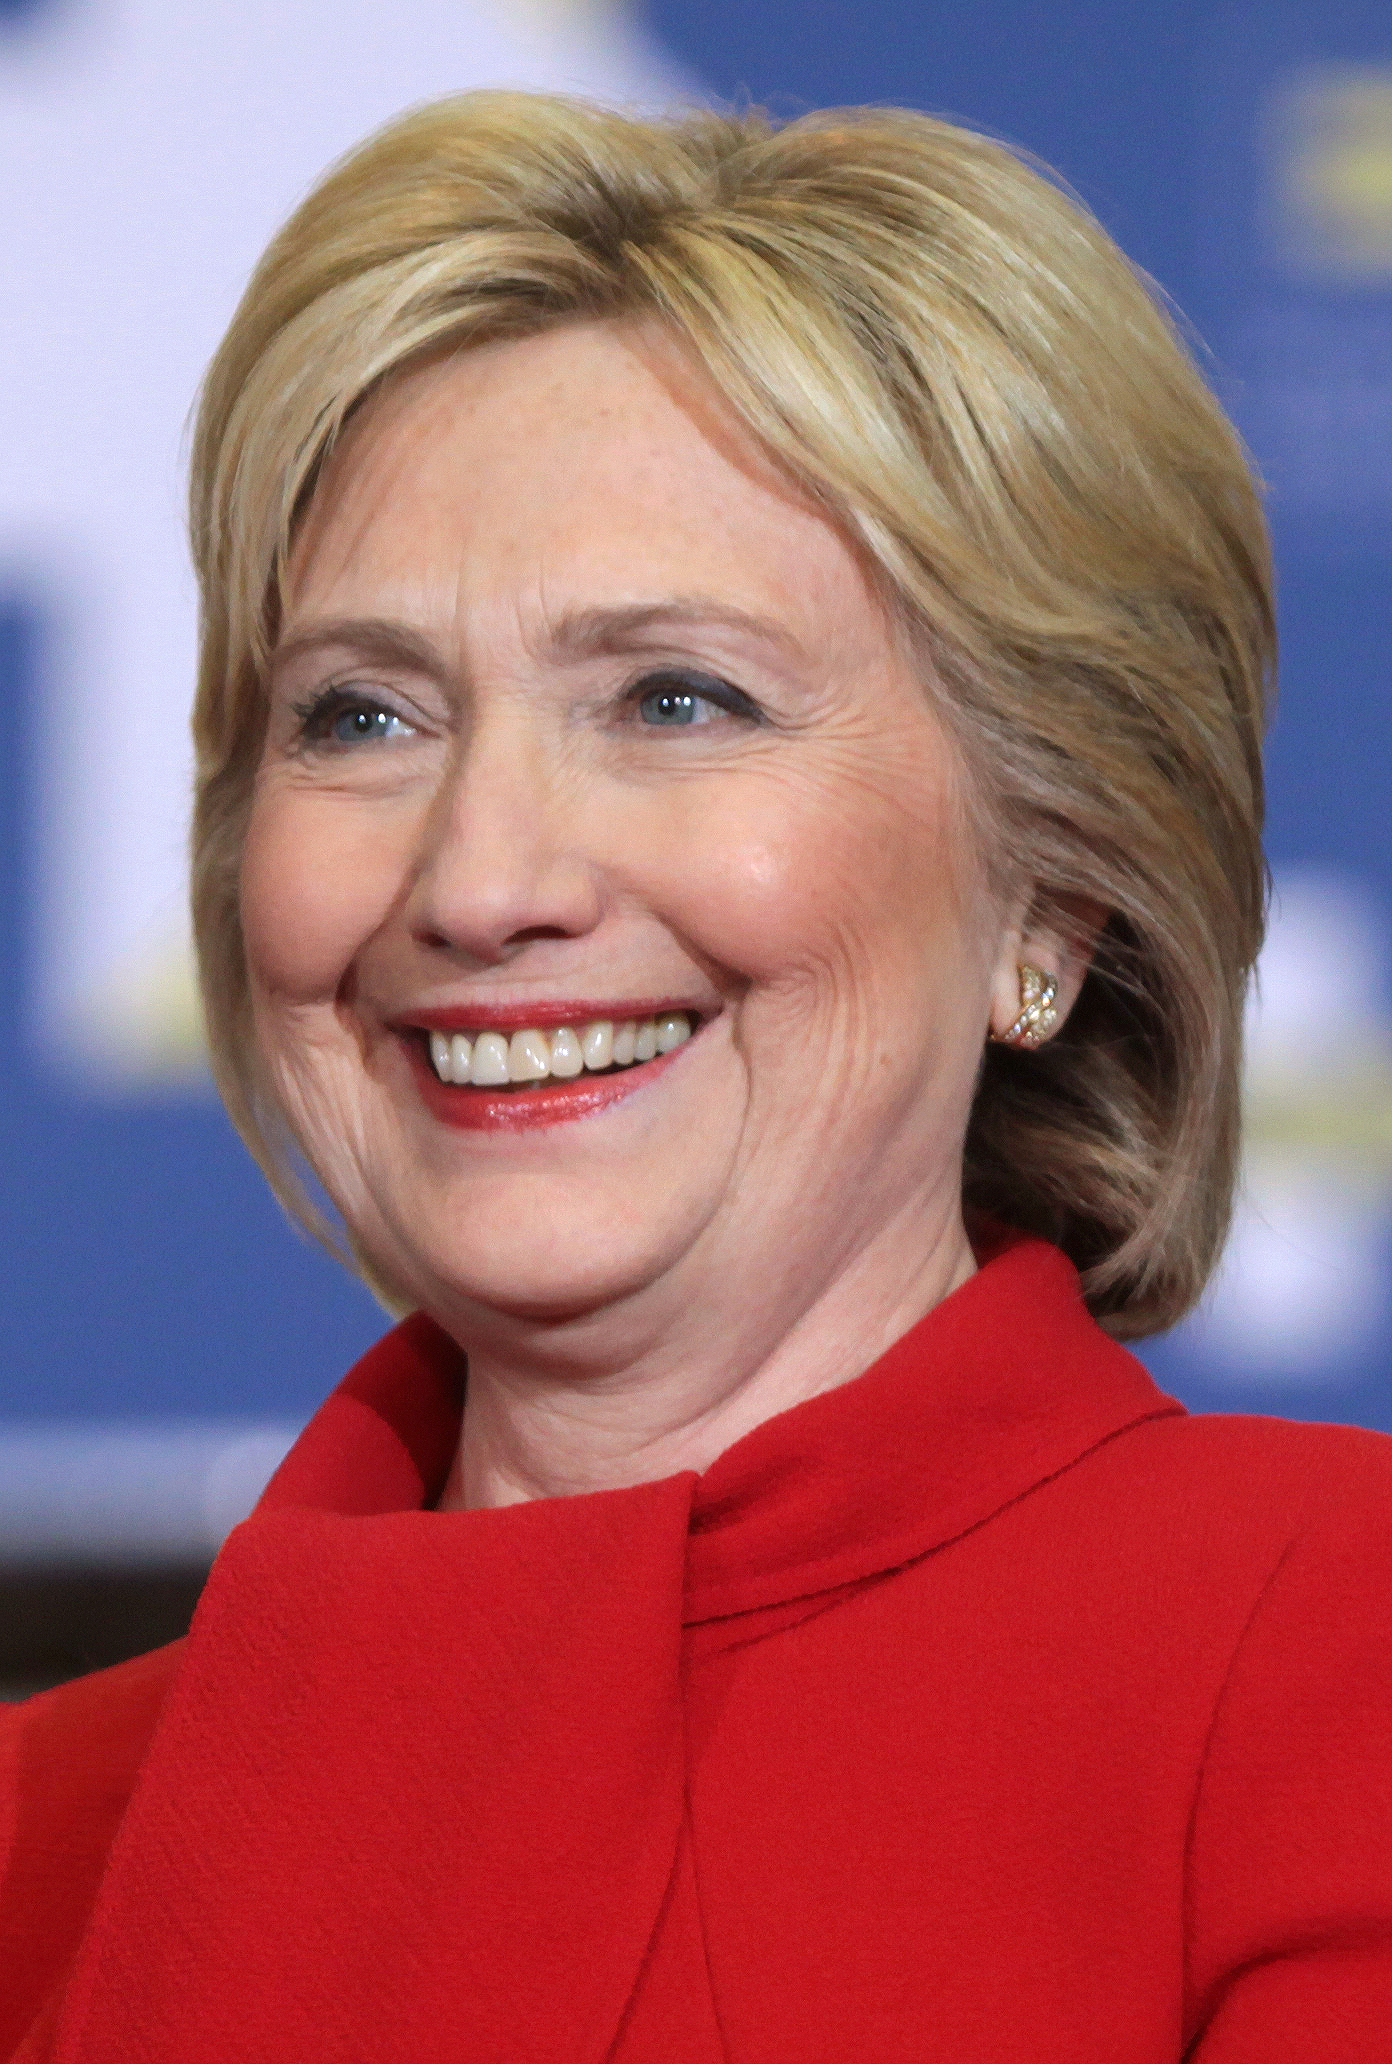 Angry hillary clinton clipart image freeuse download Hillary Clinton - Wikipedia image freeuse download